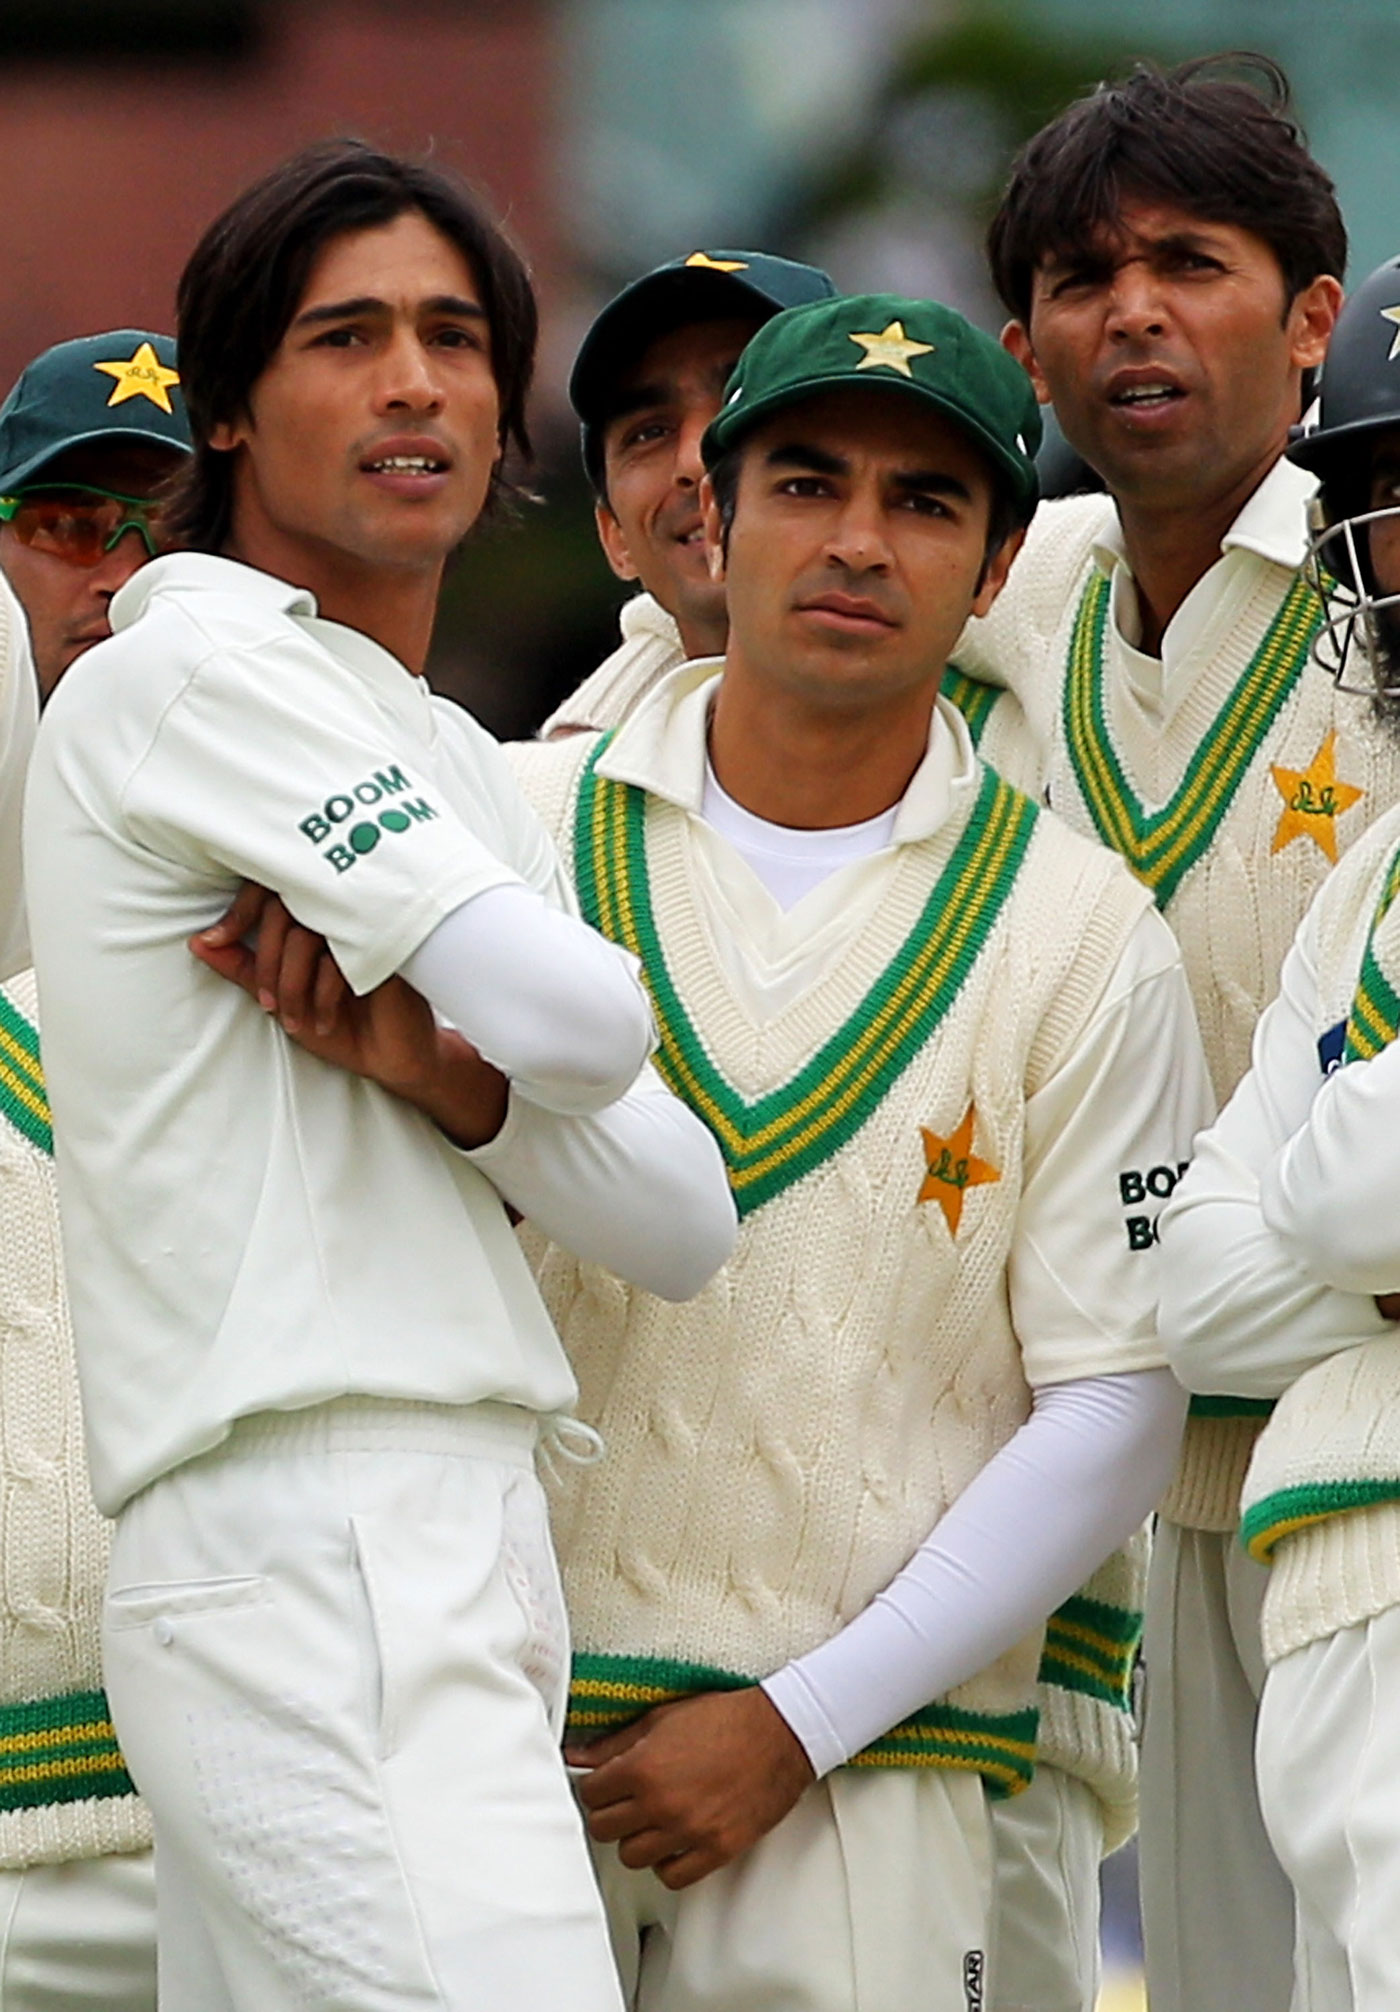 Mohammad Amir, Salman Butt and Mohammad Asif look on, Lord's, August 27, 2010